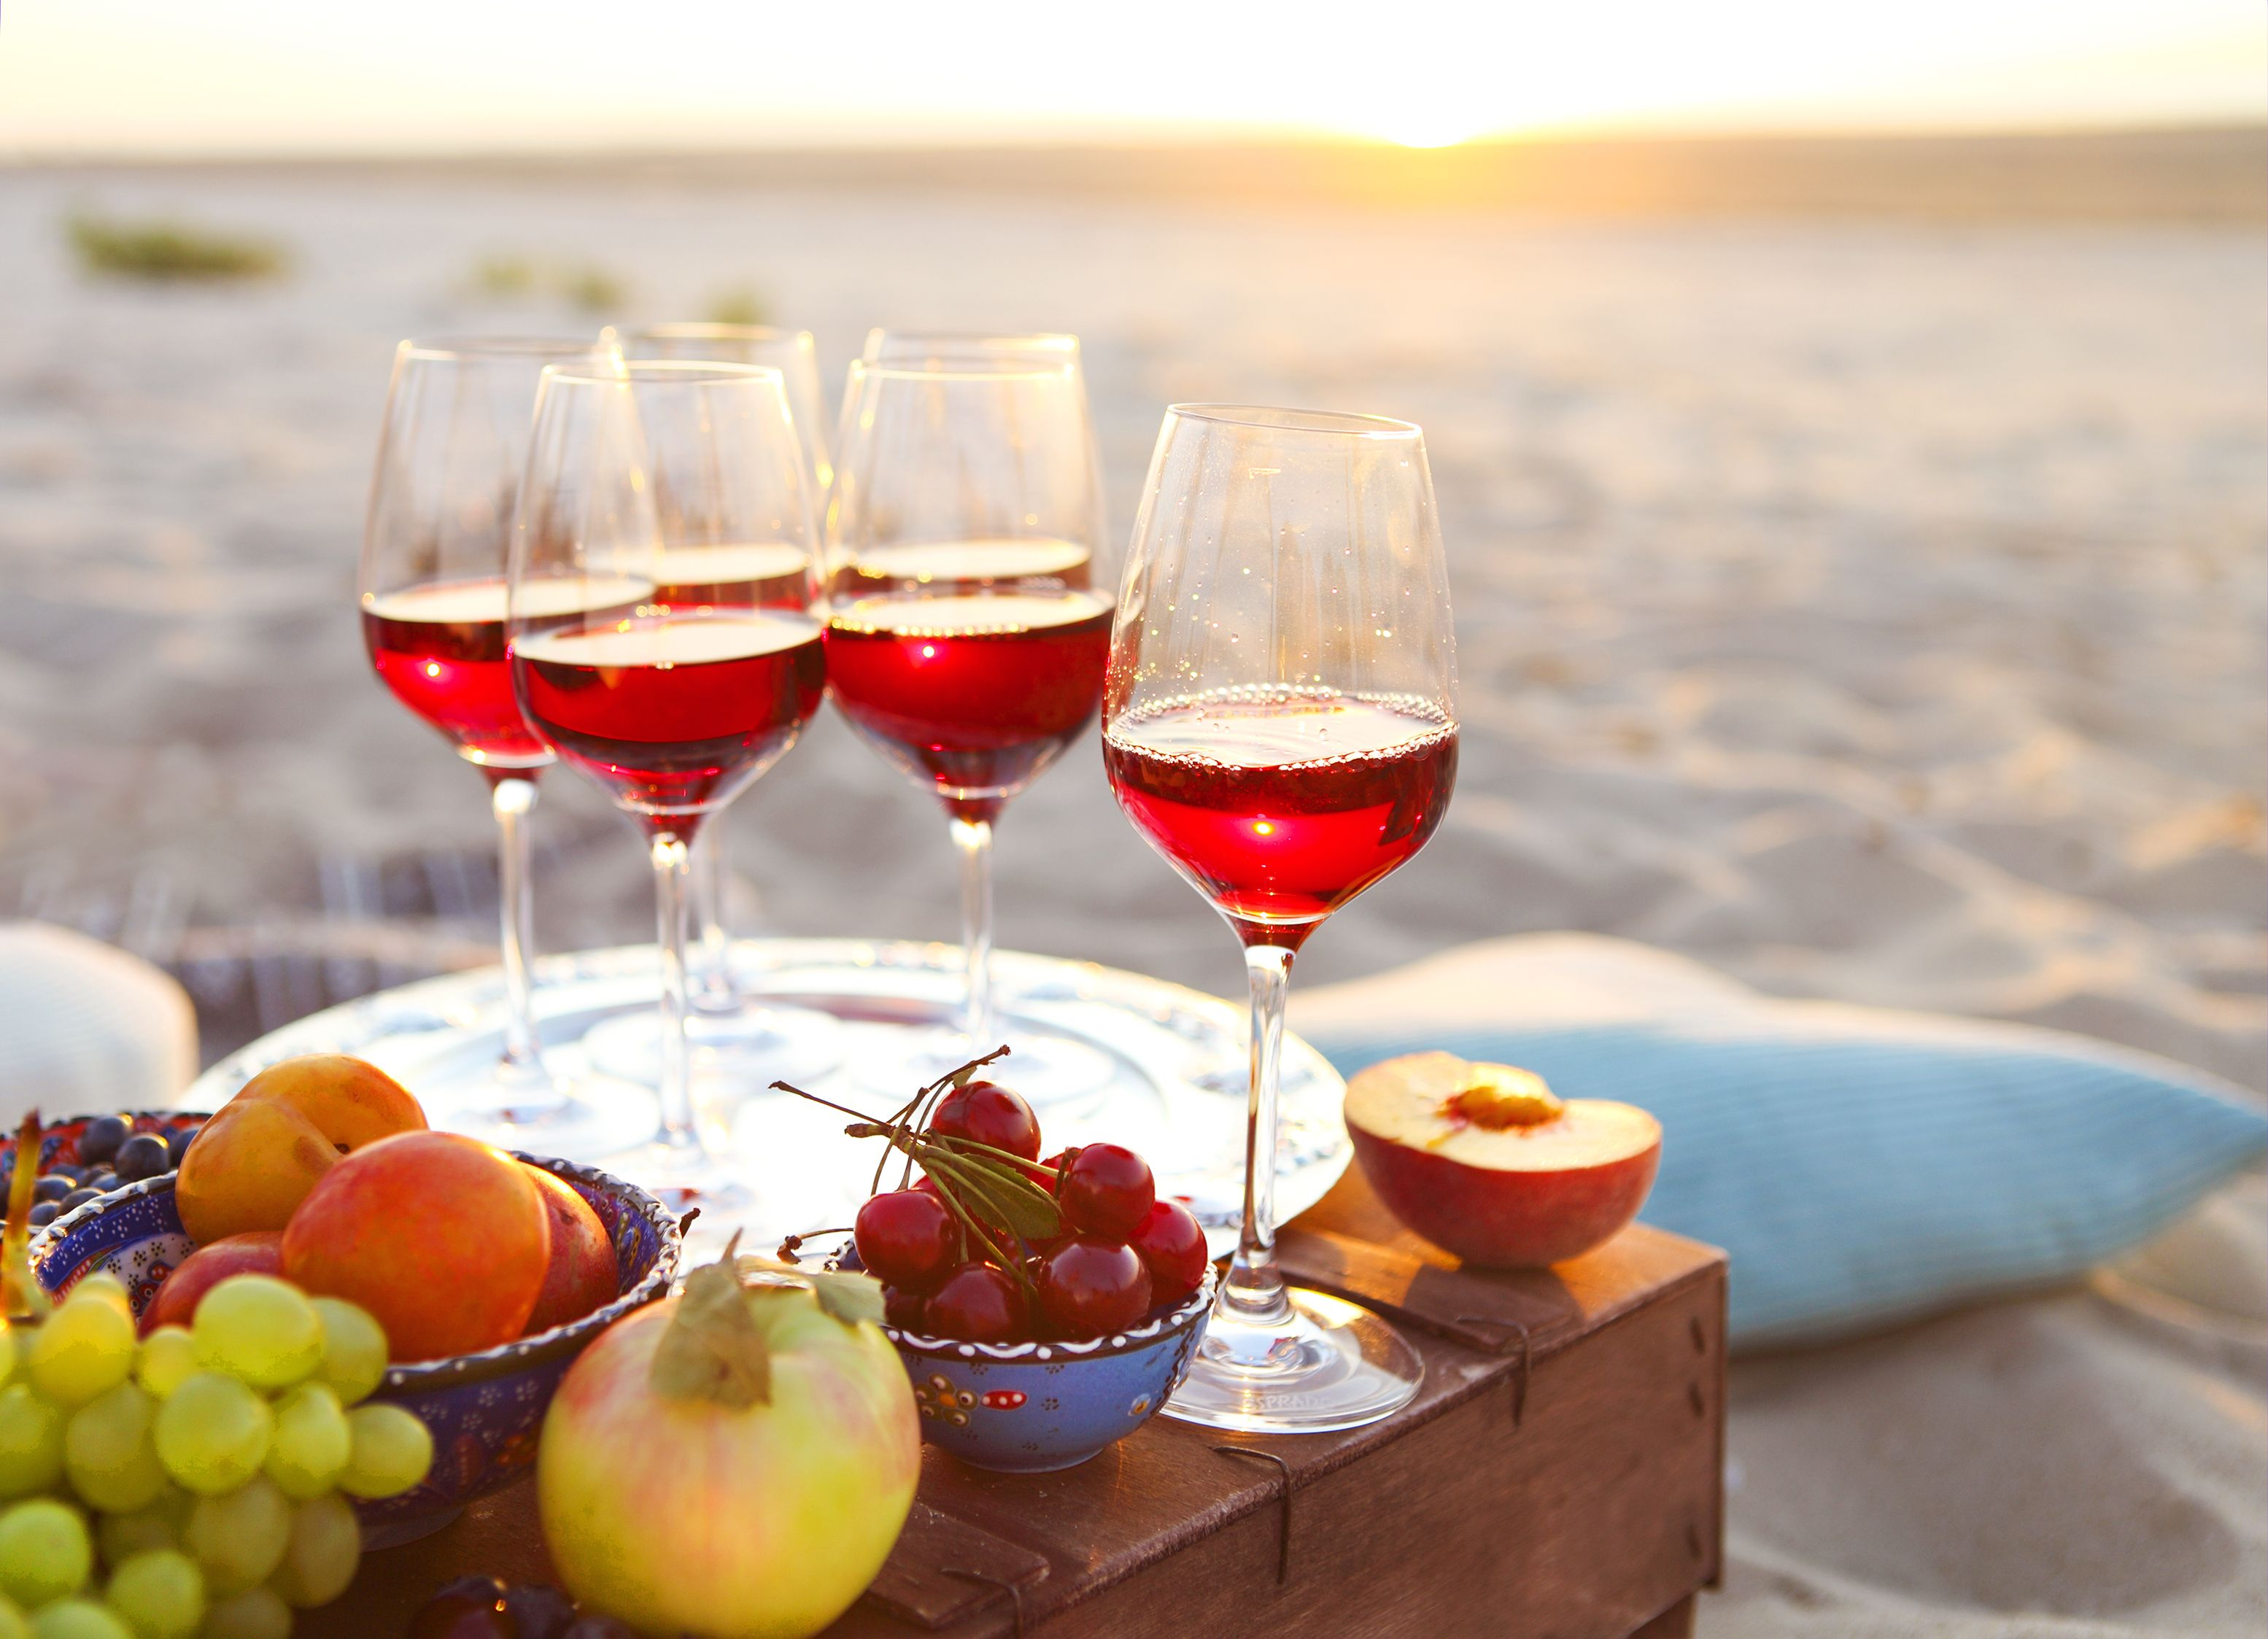 Syrah Rose This Rose Is Intended As A Dry Rose And Created From High Sugar Grapes So Has To Be Diluted Wine Making Recipes Fruit Wine Wine Desserts